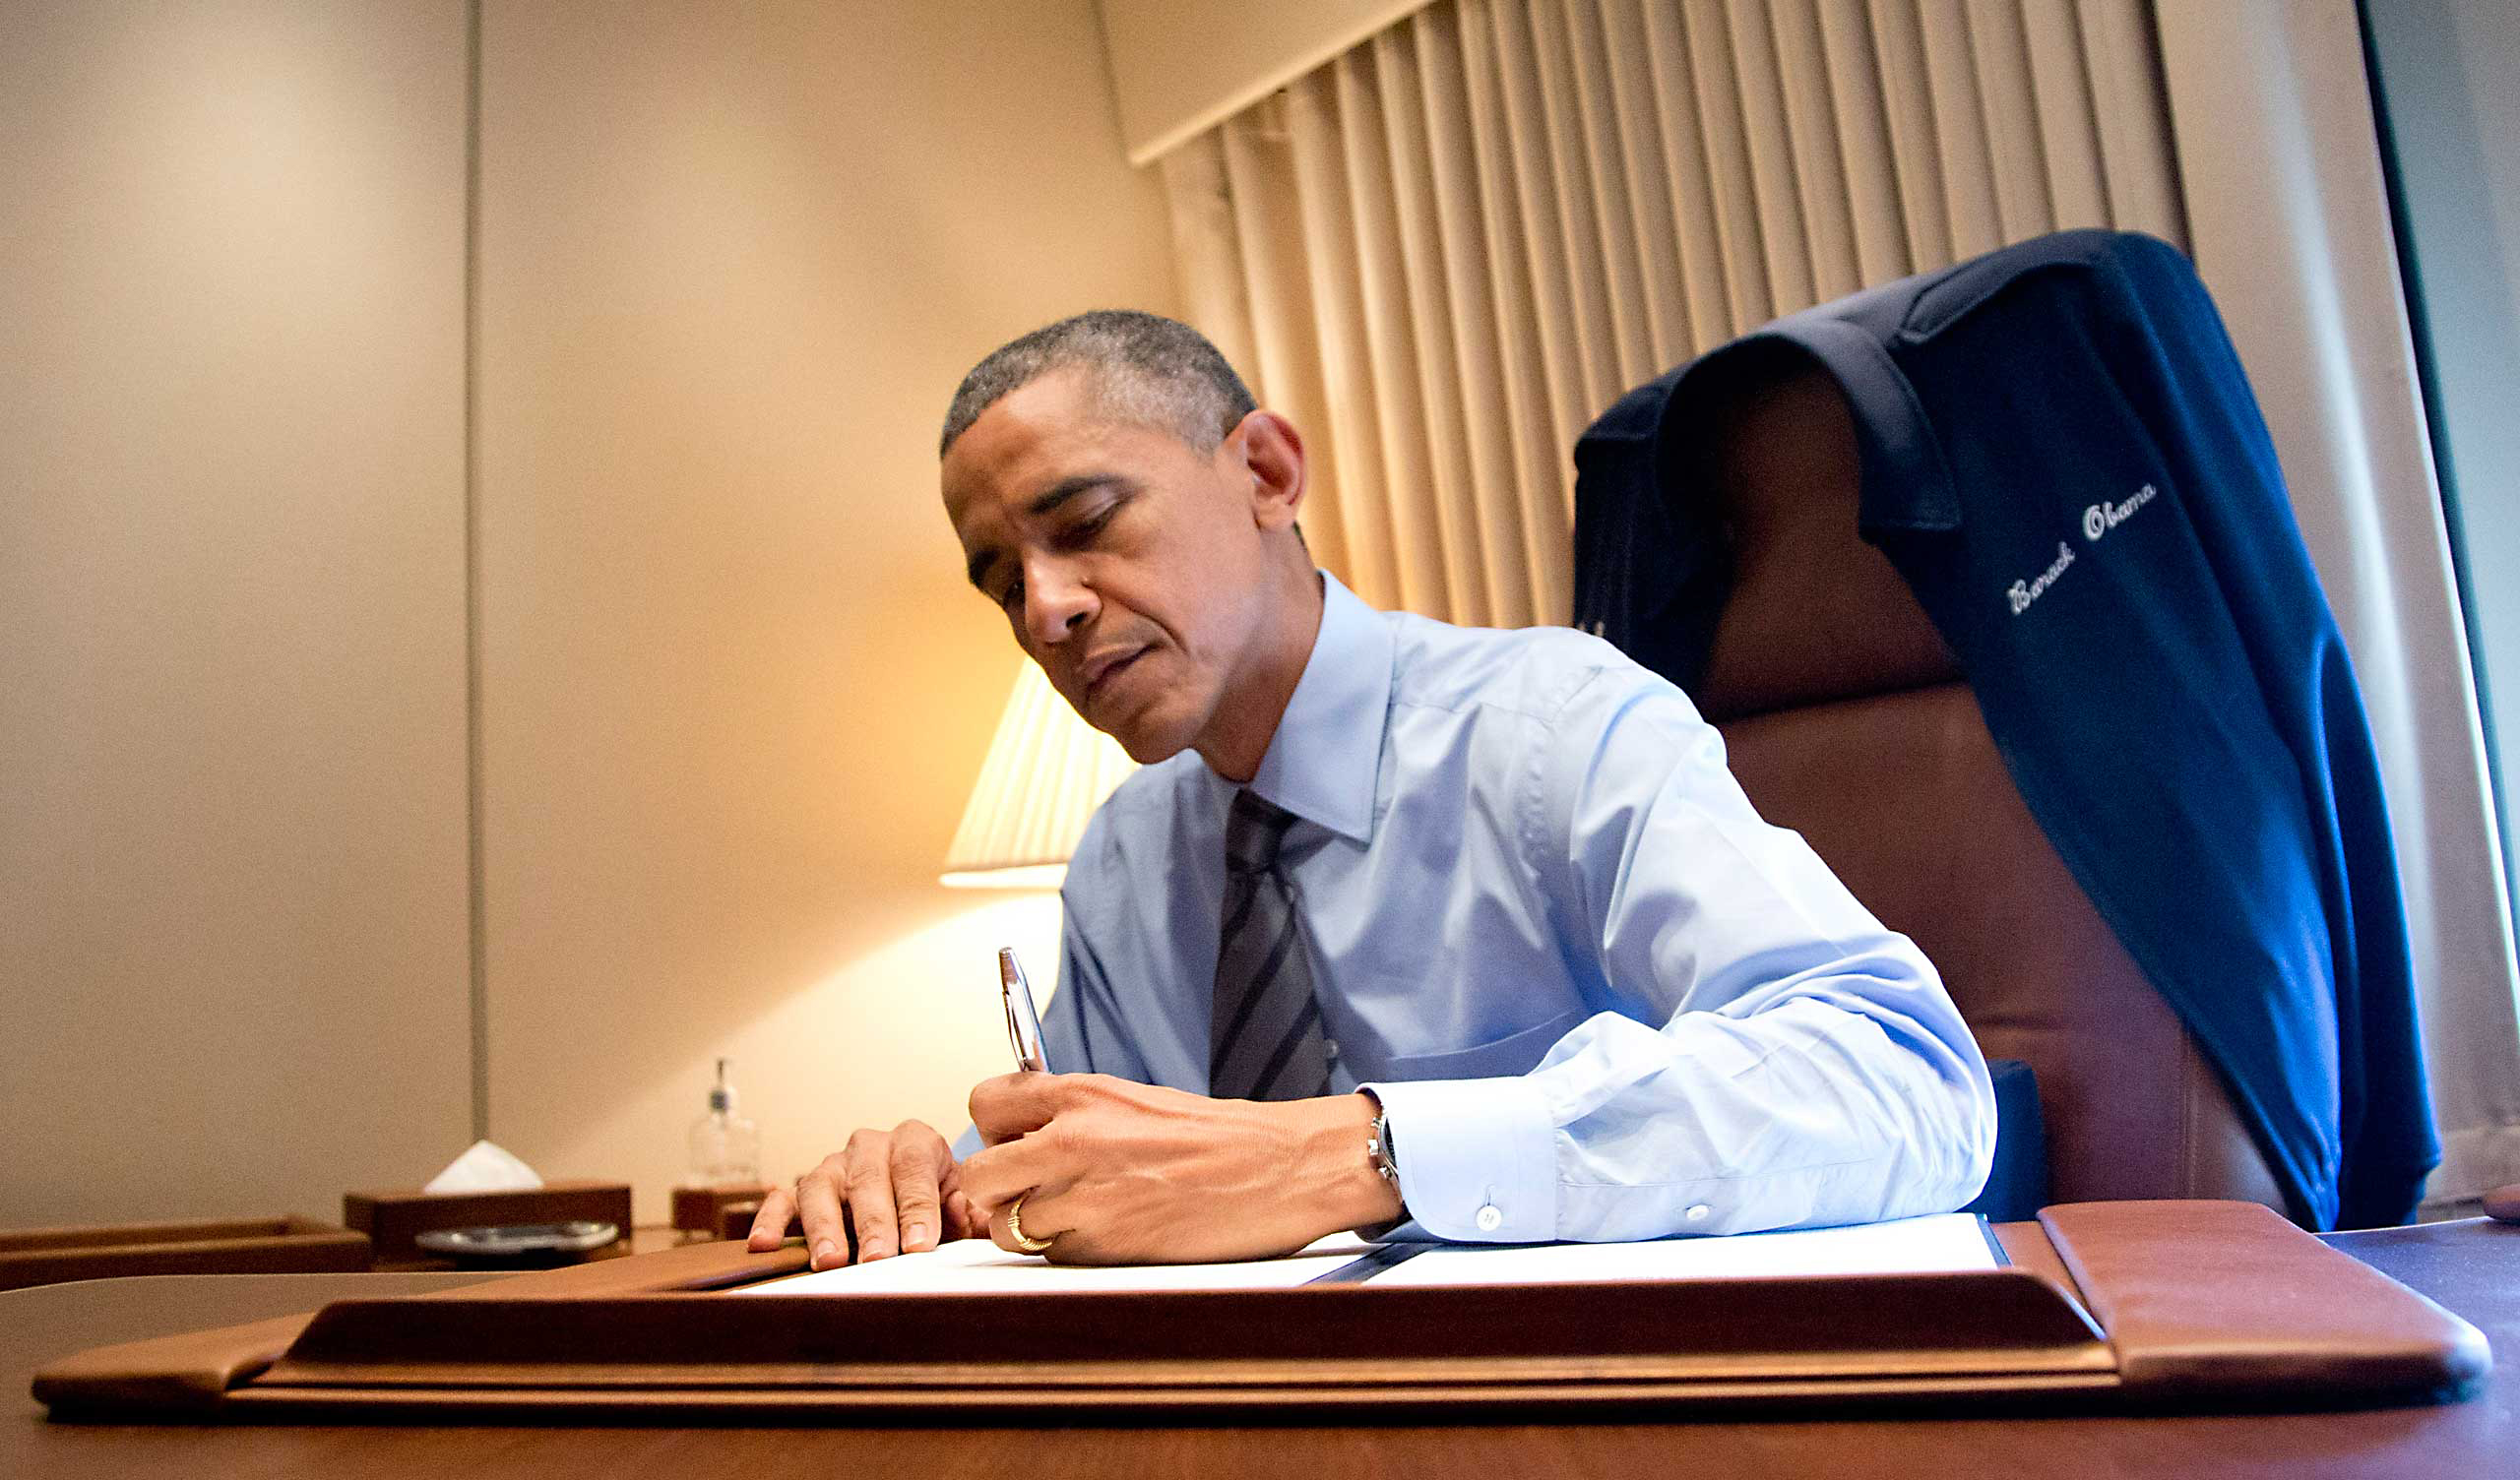 President Barack Obama signs two presidential memoranda associated with his actions on immigration in his office, on Air Force One as he arrives at McCarran International Airport in Las Vegas, Nov. 21, 2014.